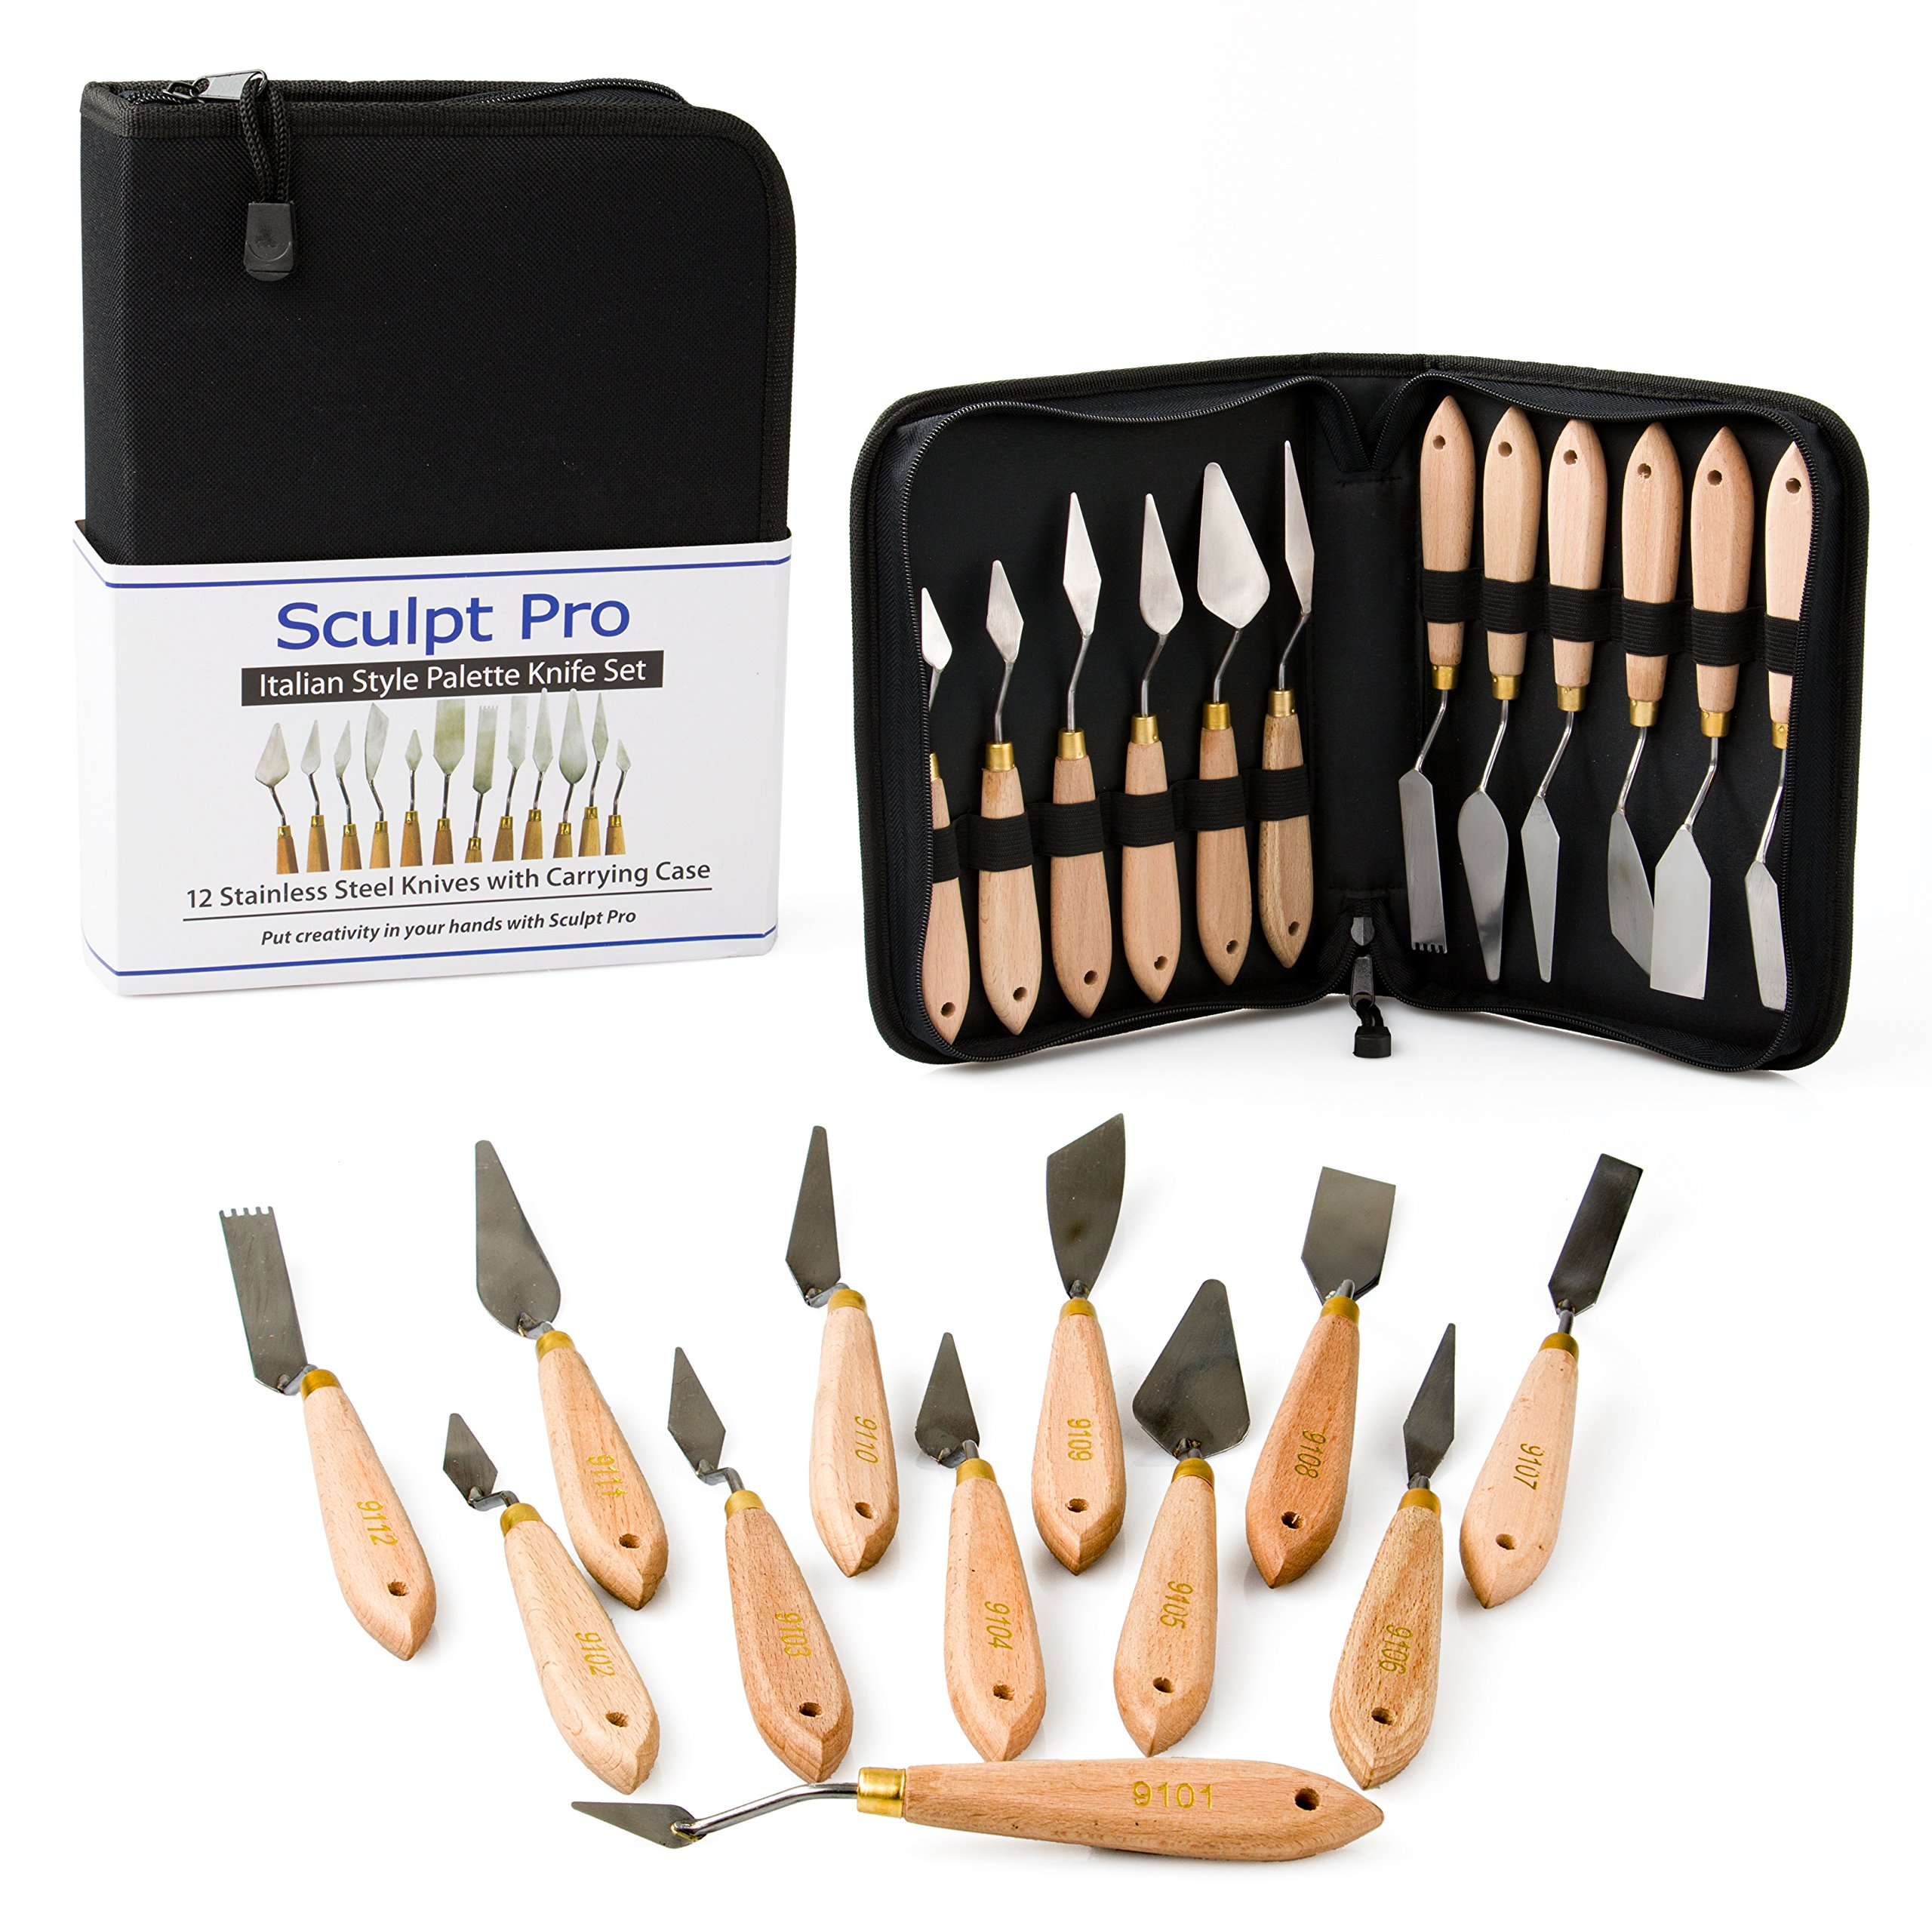 Sculpt Pro Palette Painting Knife Set- 12 Stainless Steel Art Palette Knives with Carrying Case by Sculpt Pro